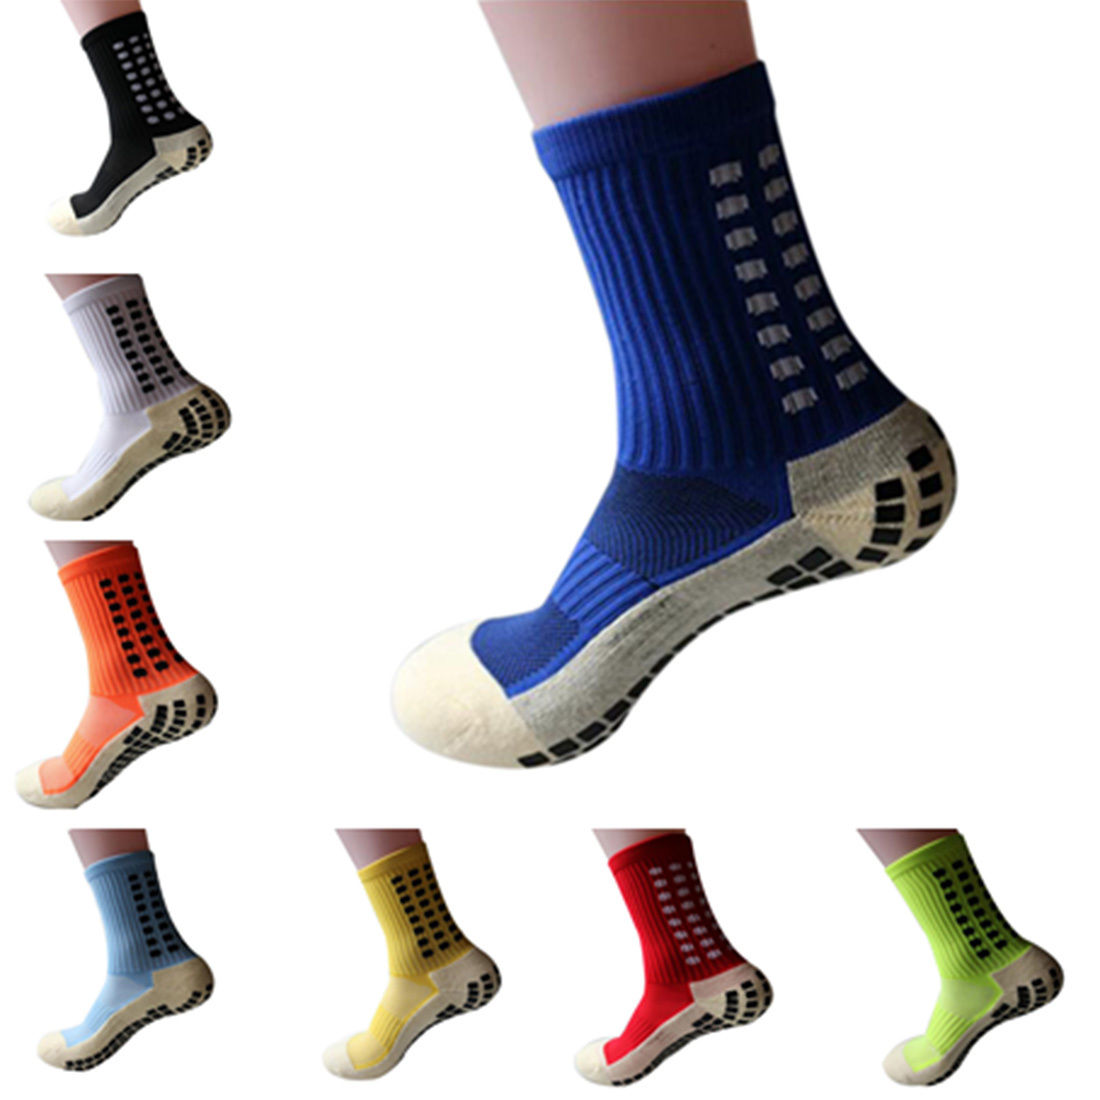 New Unisex Anti Slip Soccer Cotton Football Running Sport   Socks   Absorb Sweat